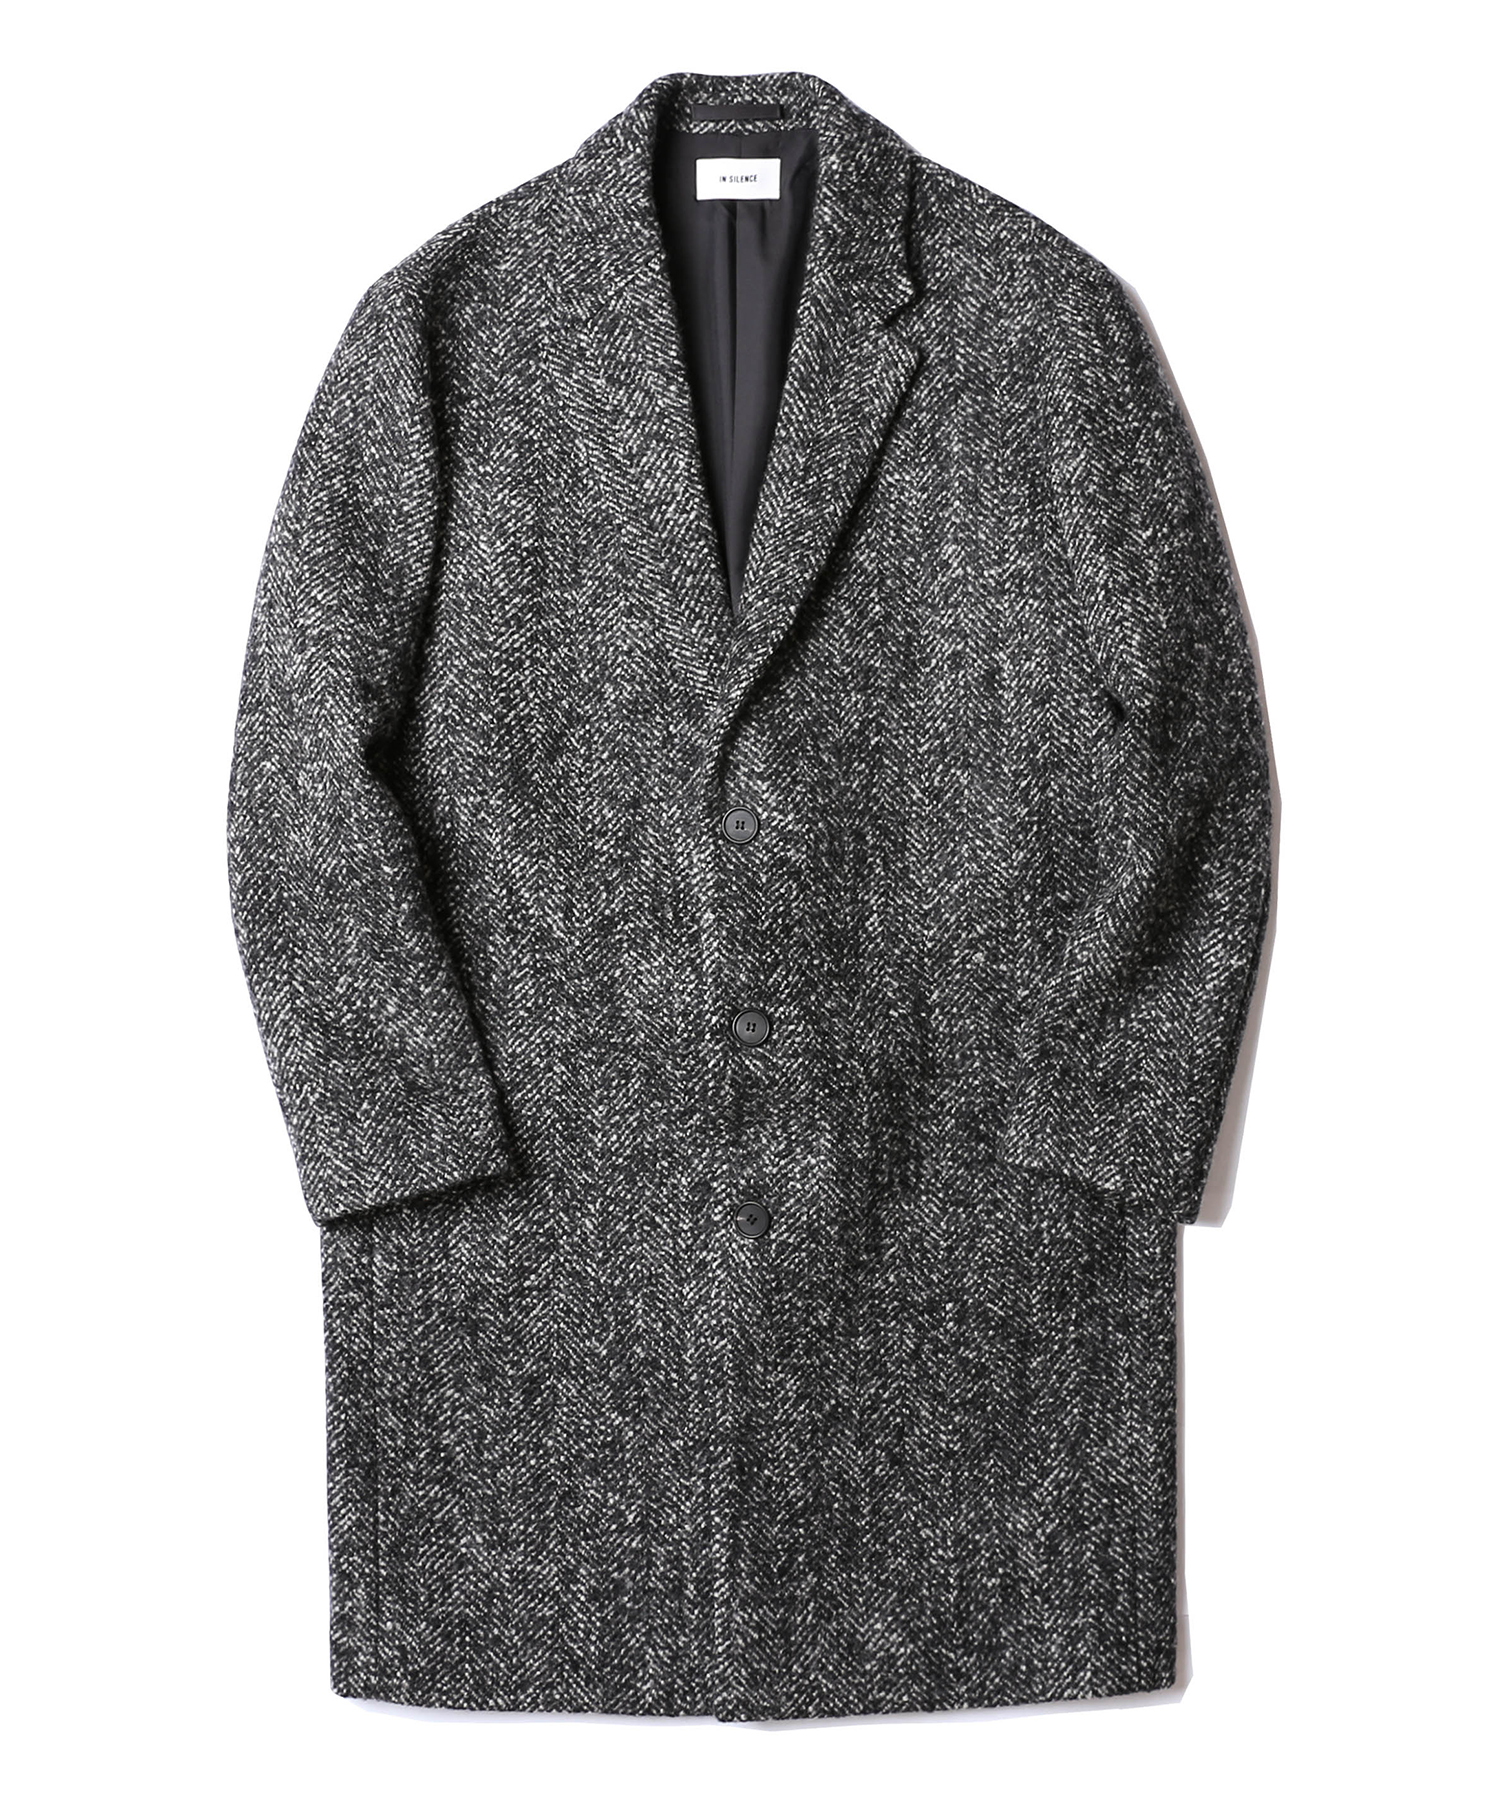 Solist Oversize Coat (Herringbone)